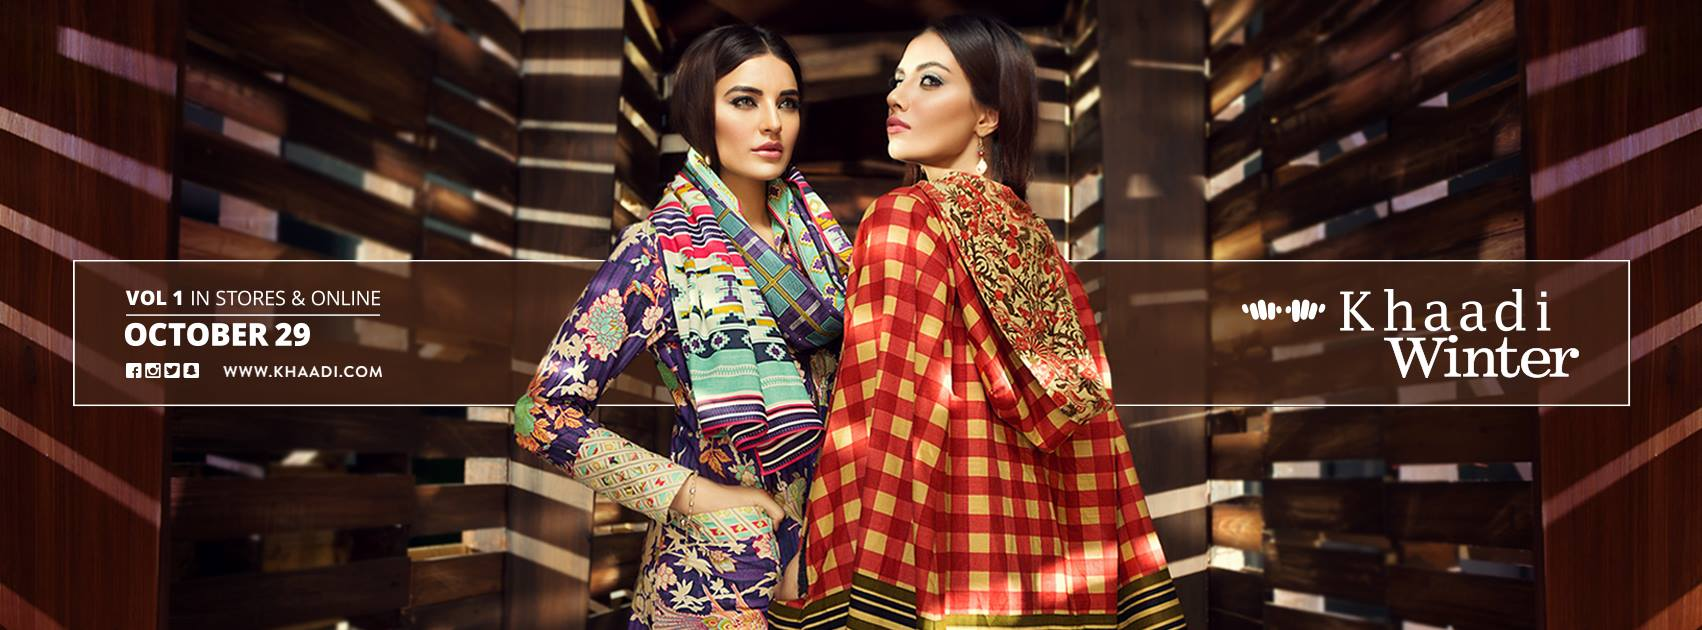 Pakistani Fashion Designer Khaadi